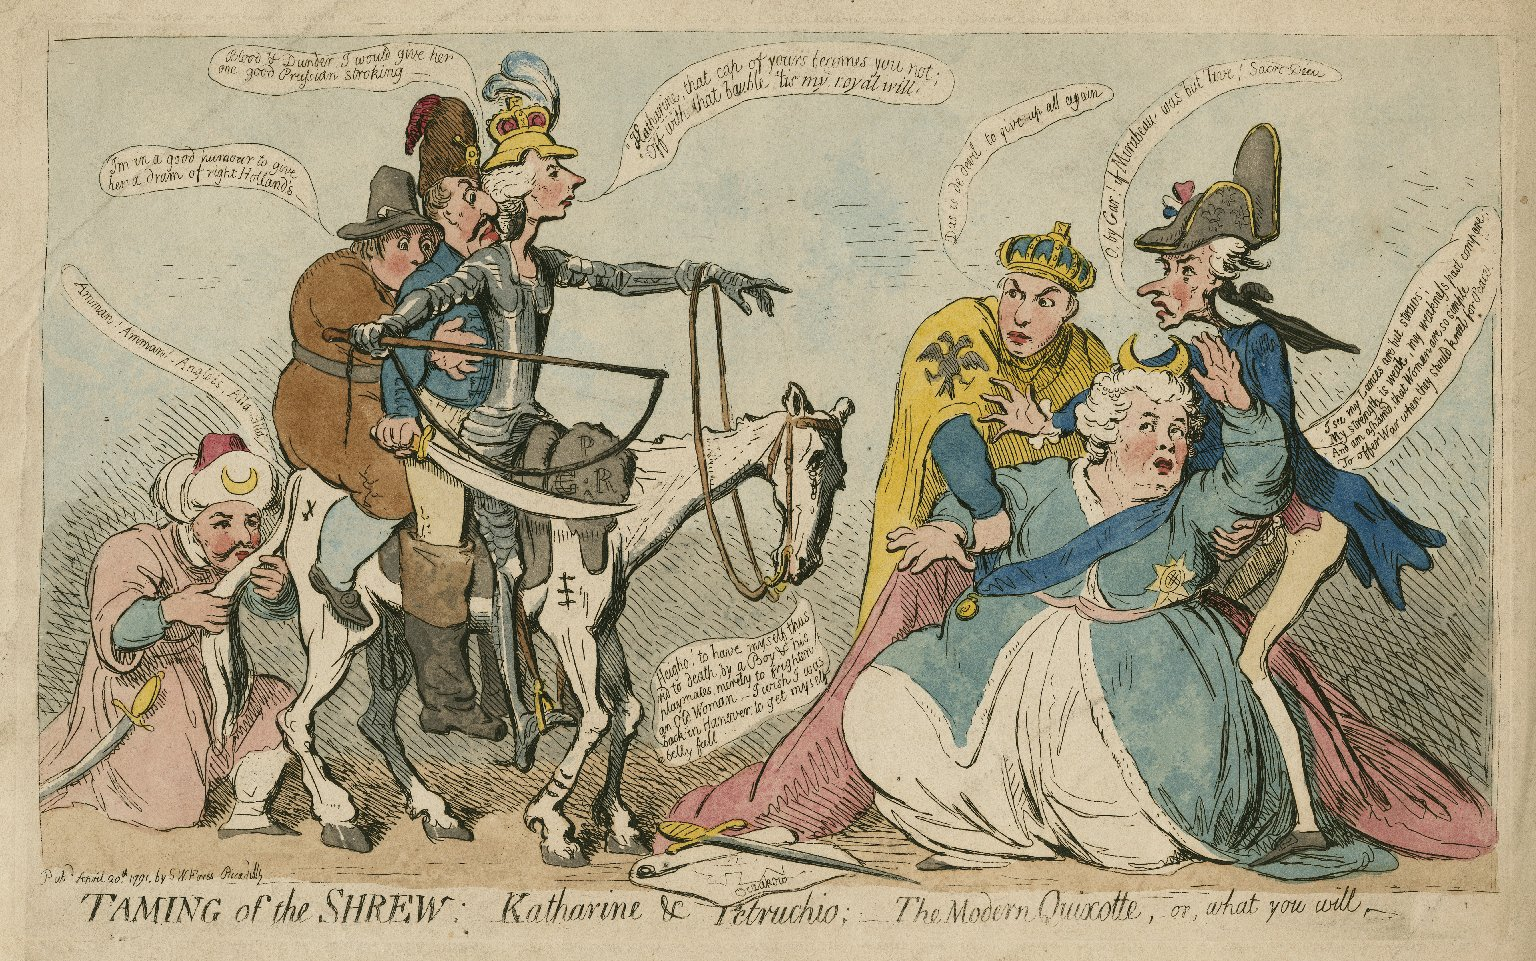 Taming of the shrew, Katharine & Petruchio, the modern Quixotte [sic] or, what you will [graphic] / [James Gillray].